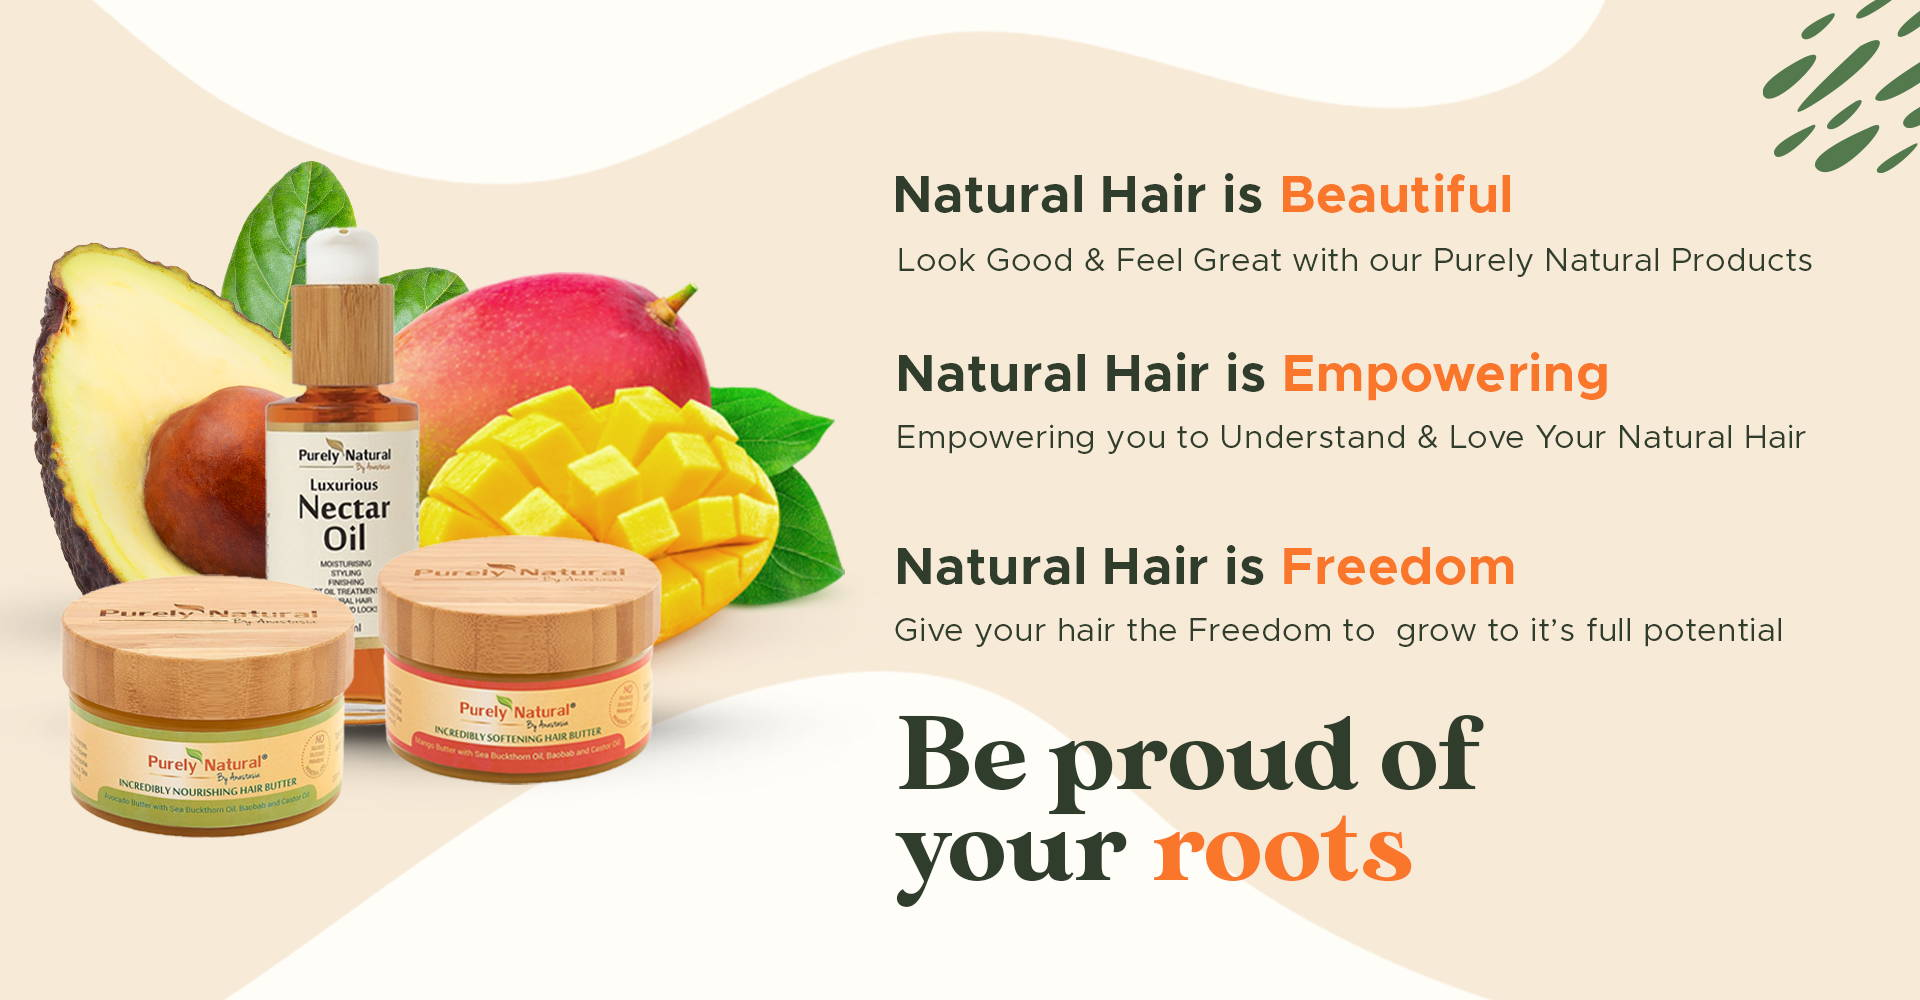 Be Proud of Your Roots from Purely Natural by Anastasia